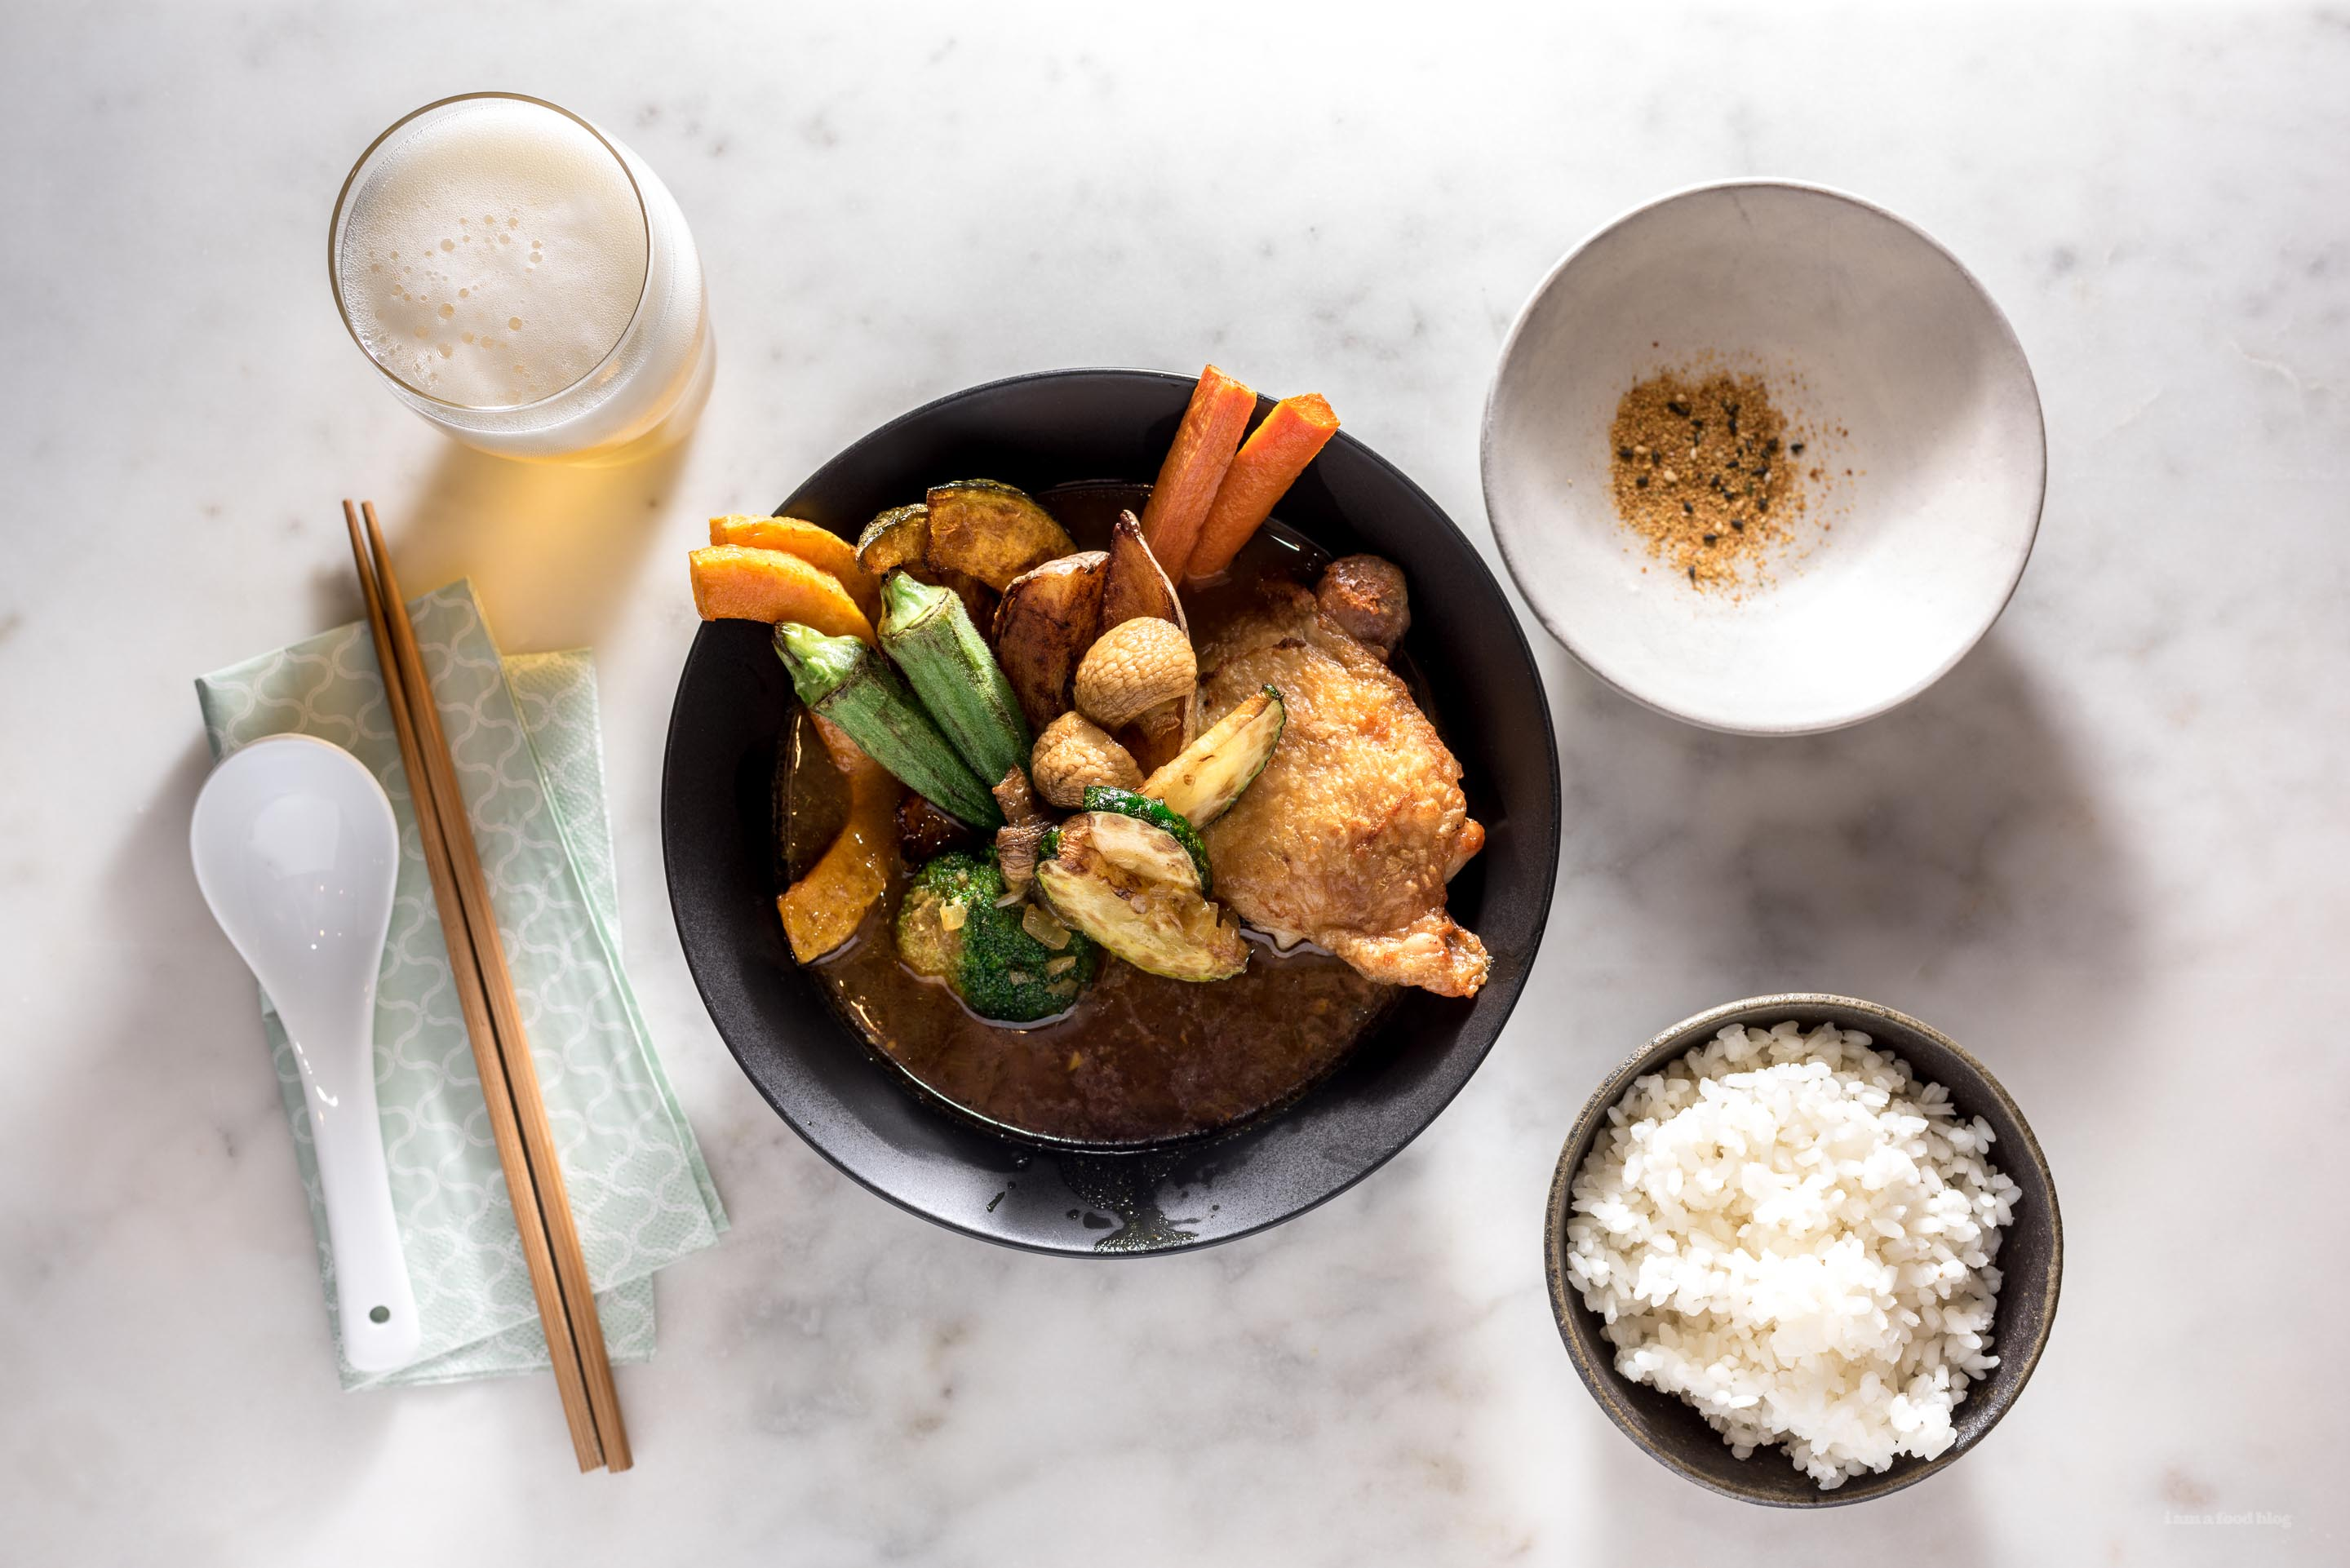 Sapporo soup curry recipe i am a food blog i am a food blog have you guys heard of japanese soup curry its like curry but soupier sounds silly but thats what it is soup curry hails from the hokkaido region of forumfinder Image collections